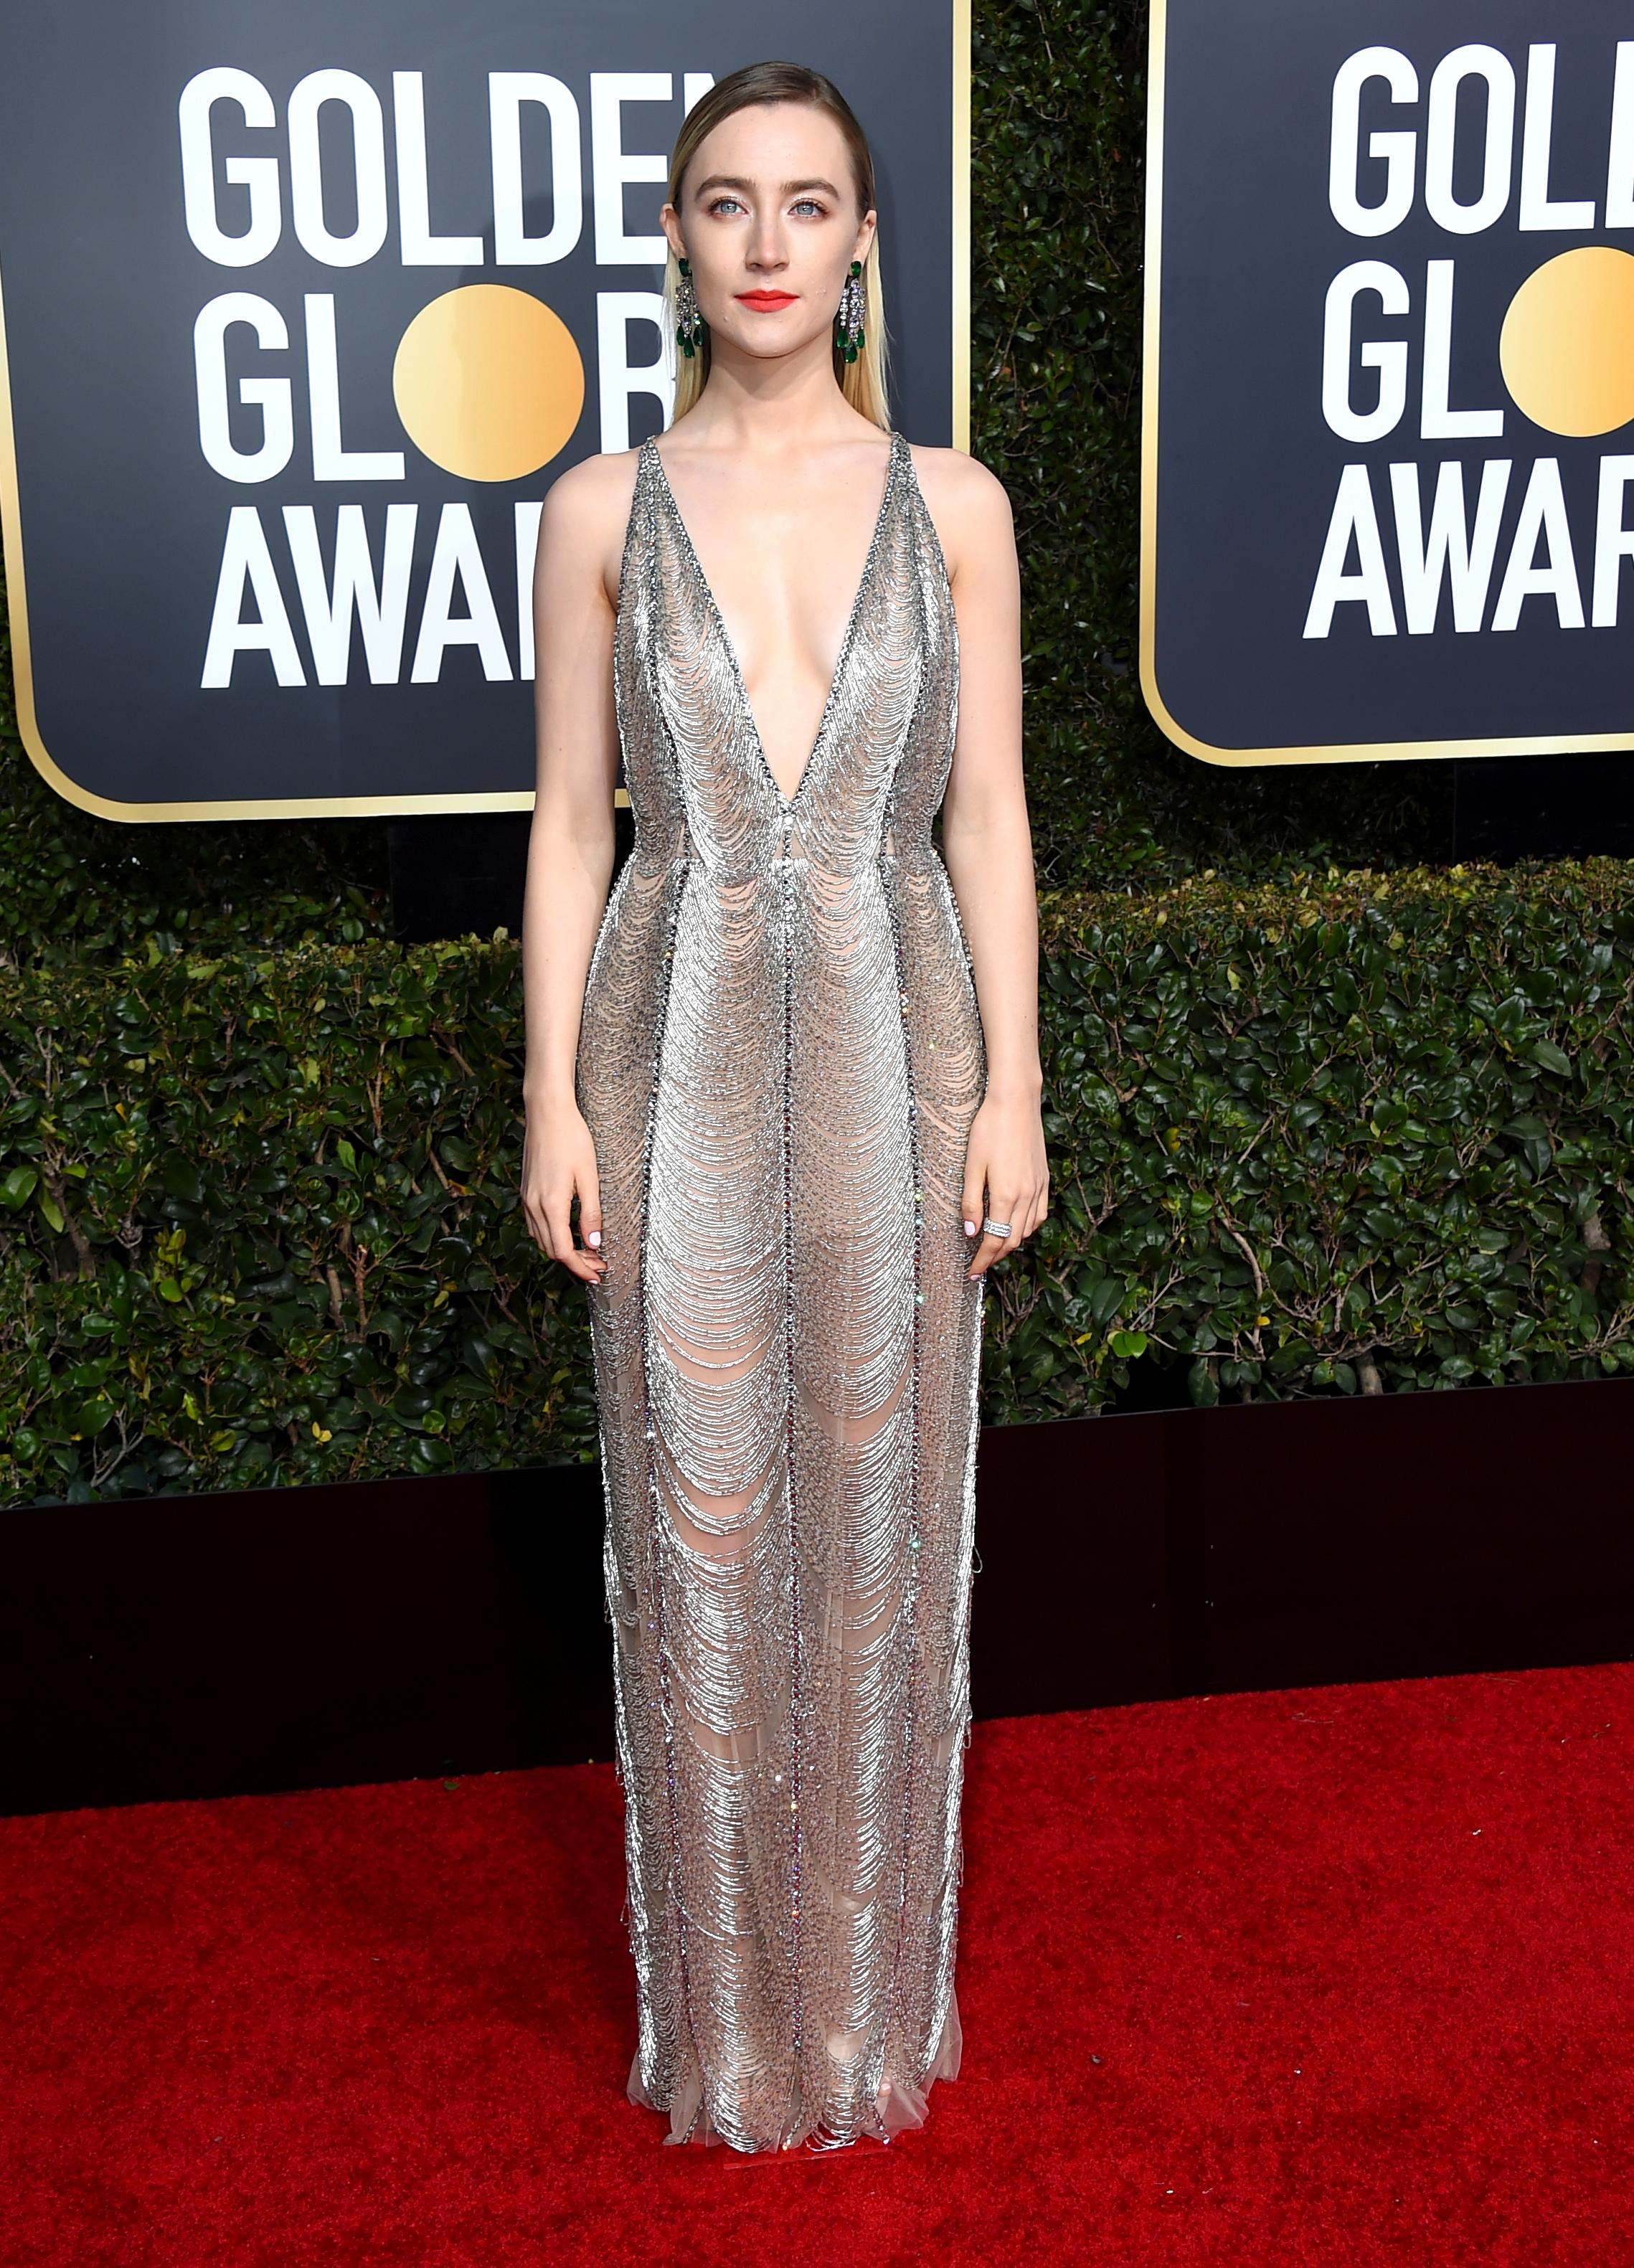 Saoirse Ronan arrives at the 76th annual Golden Globe Awards at the Beverly Hilton Hotel on Sunday, Jan. 6, 2019, in Beverly Hills, Calif. (Photo by Jordan Strauss/Invision/AP)